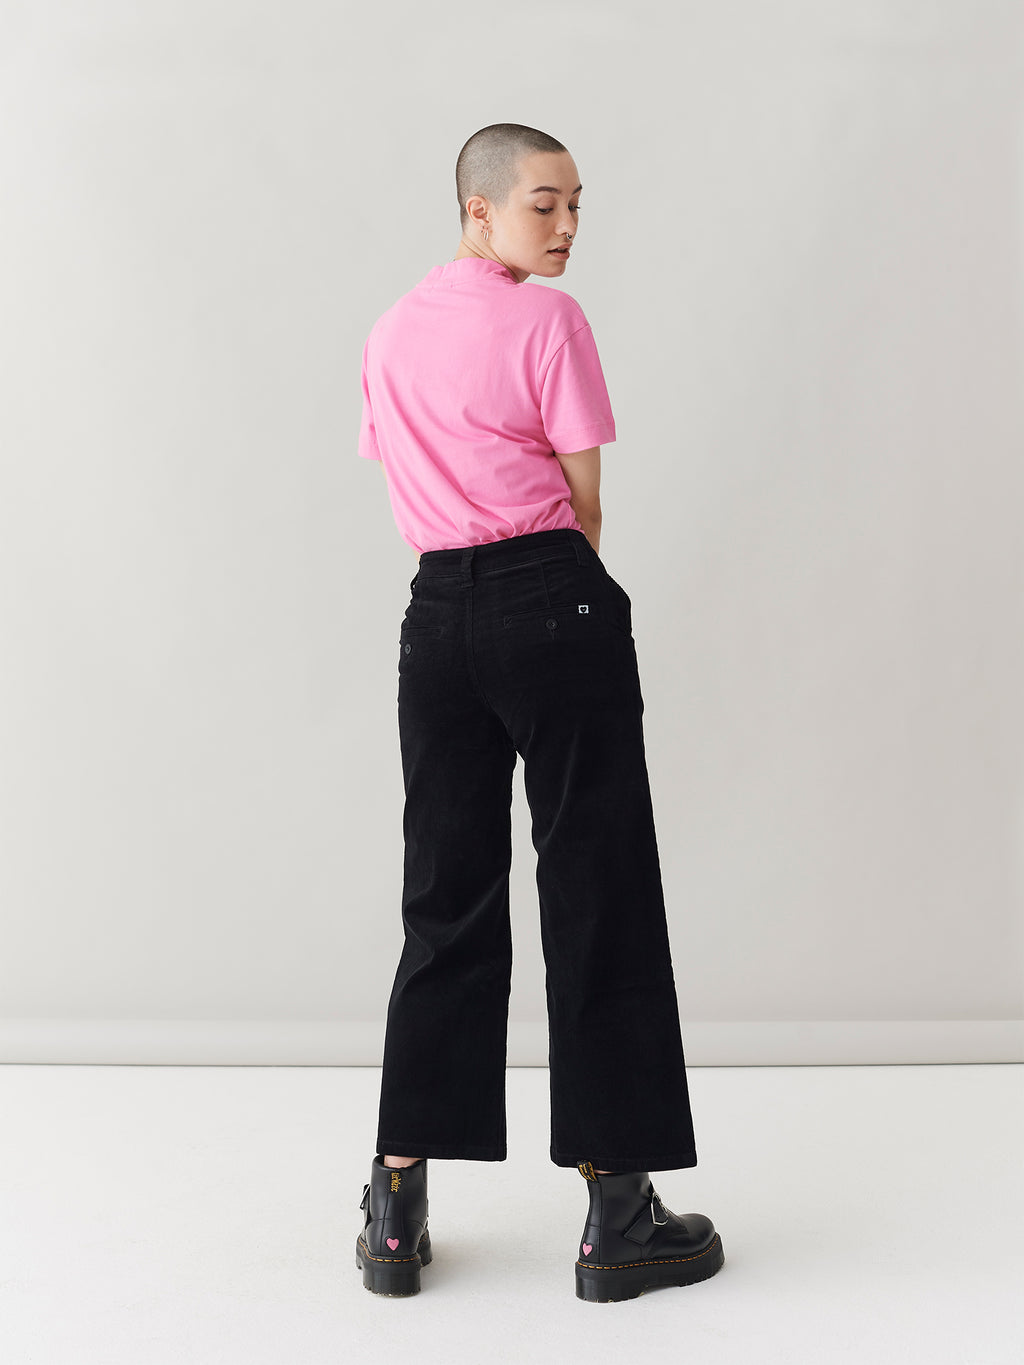 LO Black Cord Work Pants